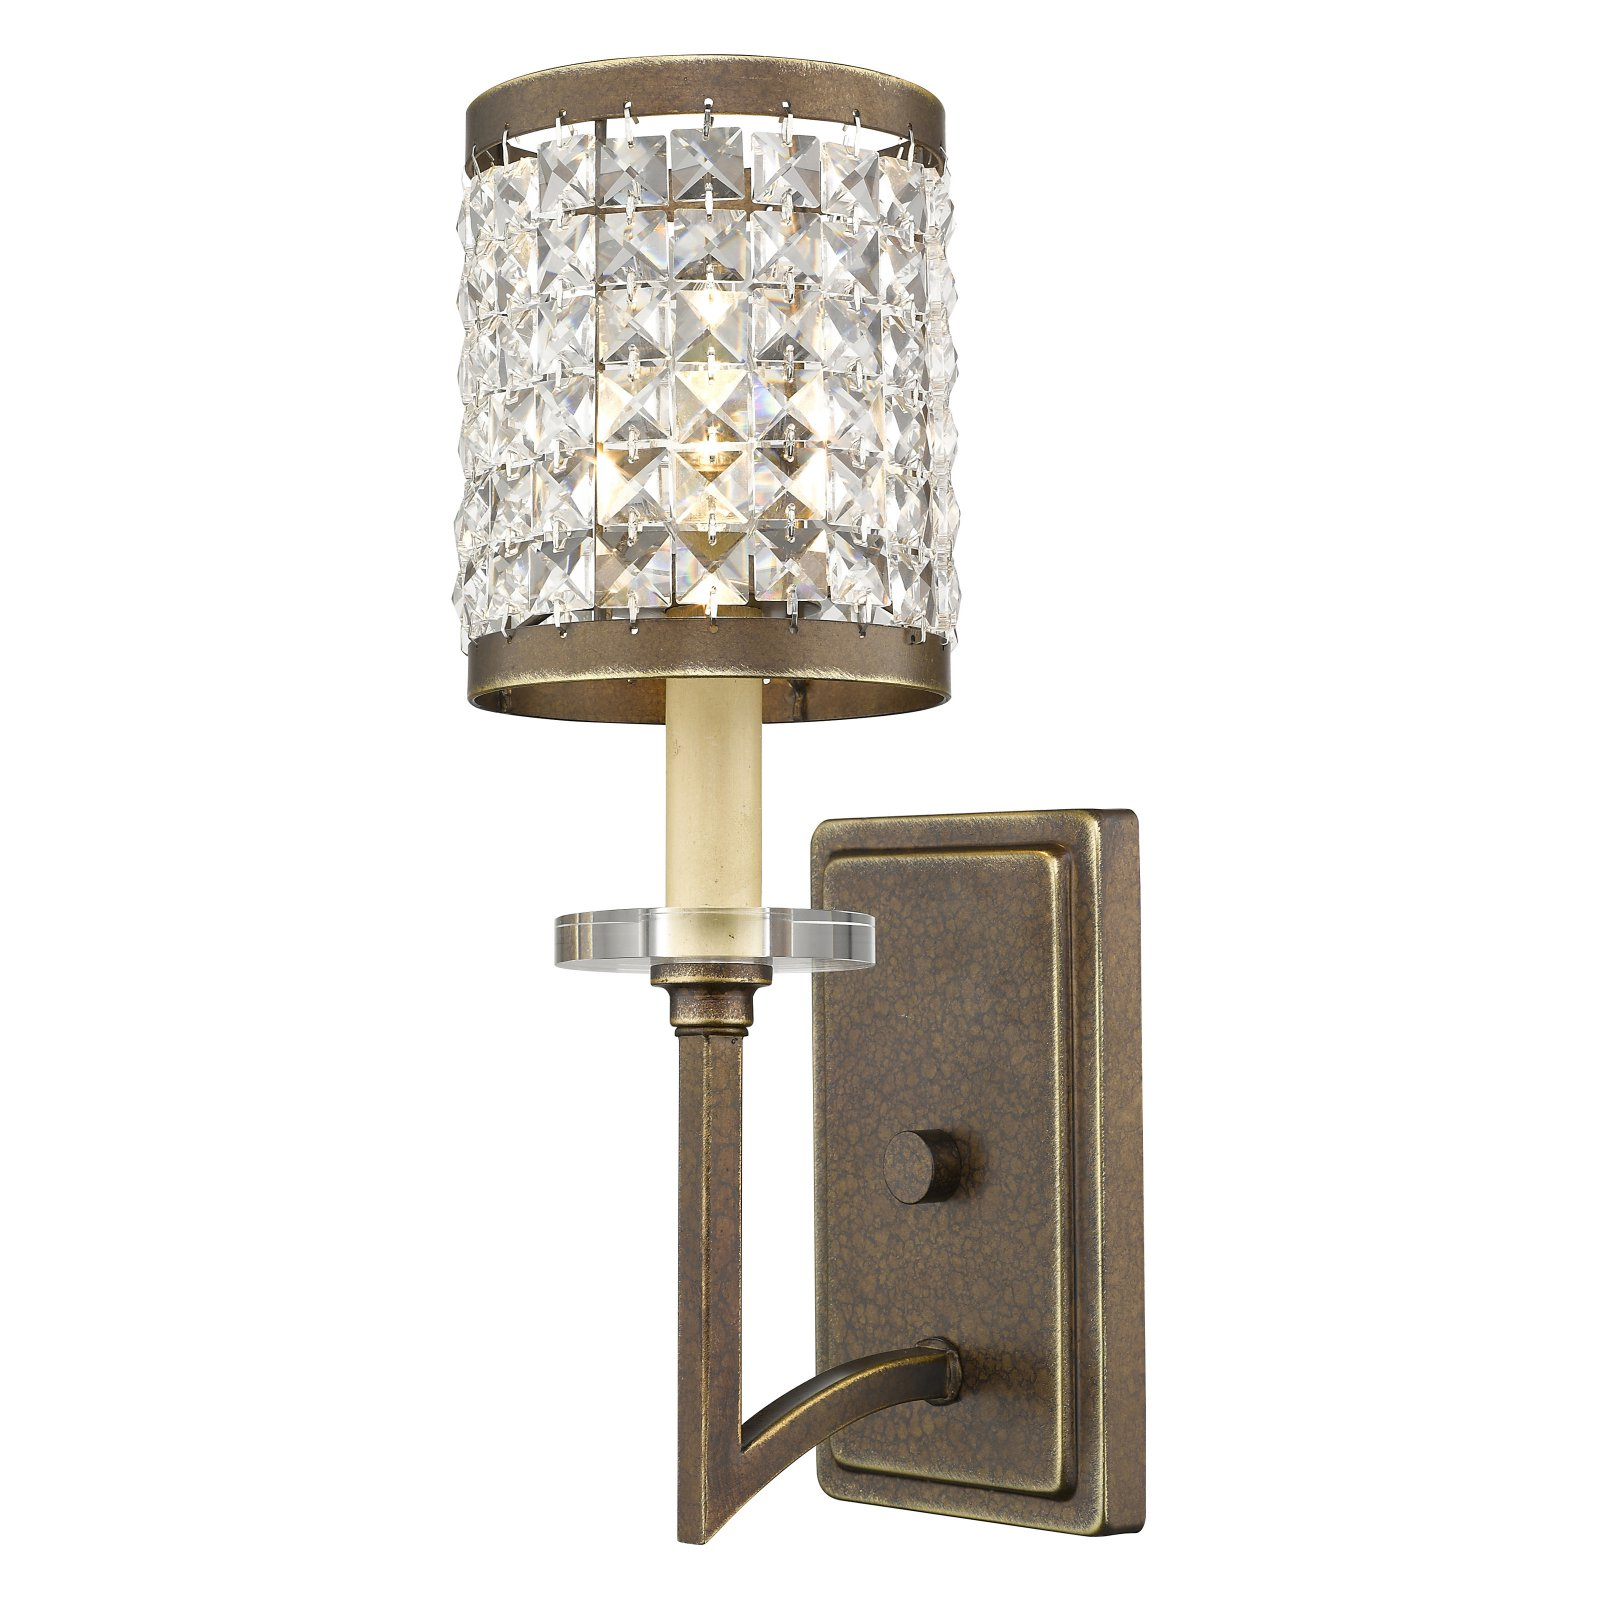 Livex Lighting Grammercy 1 Light Wall Sconce